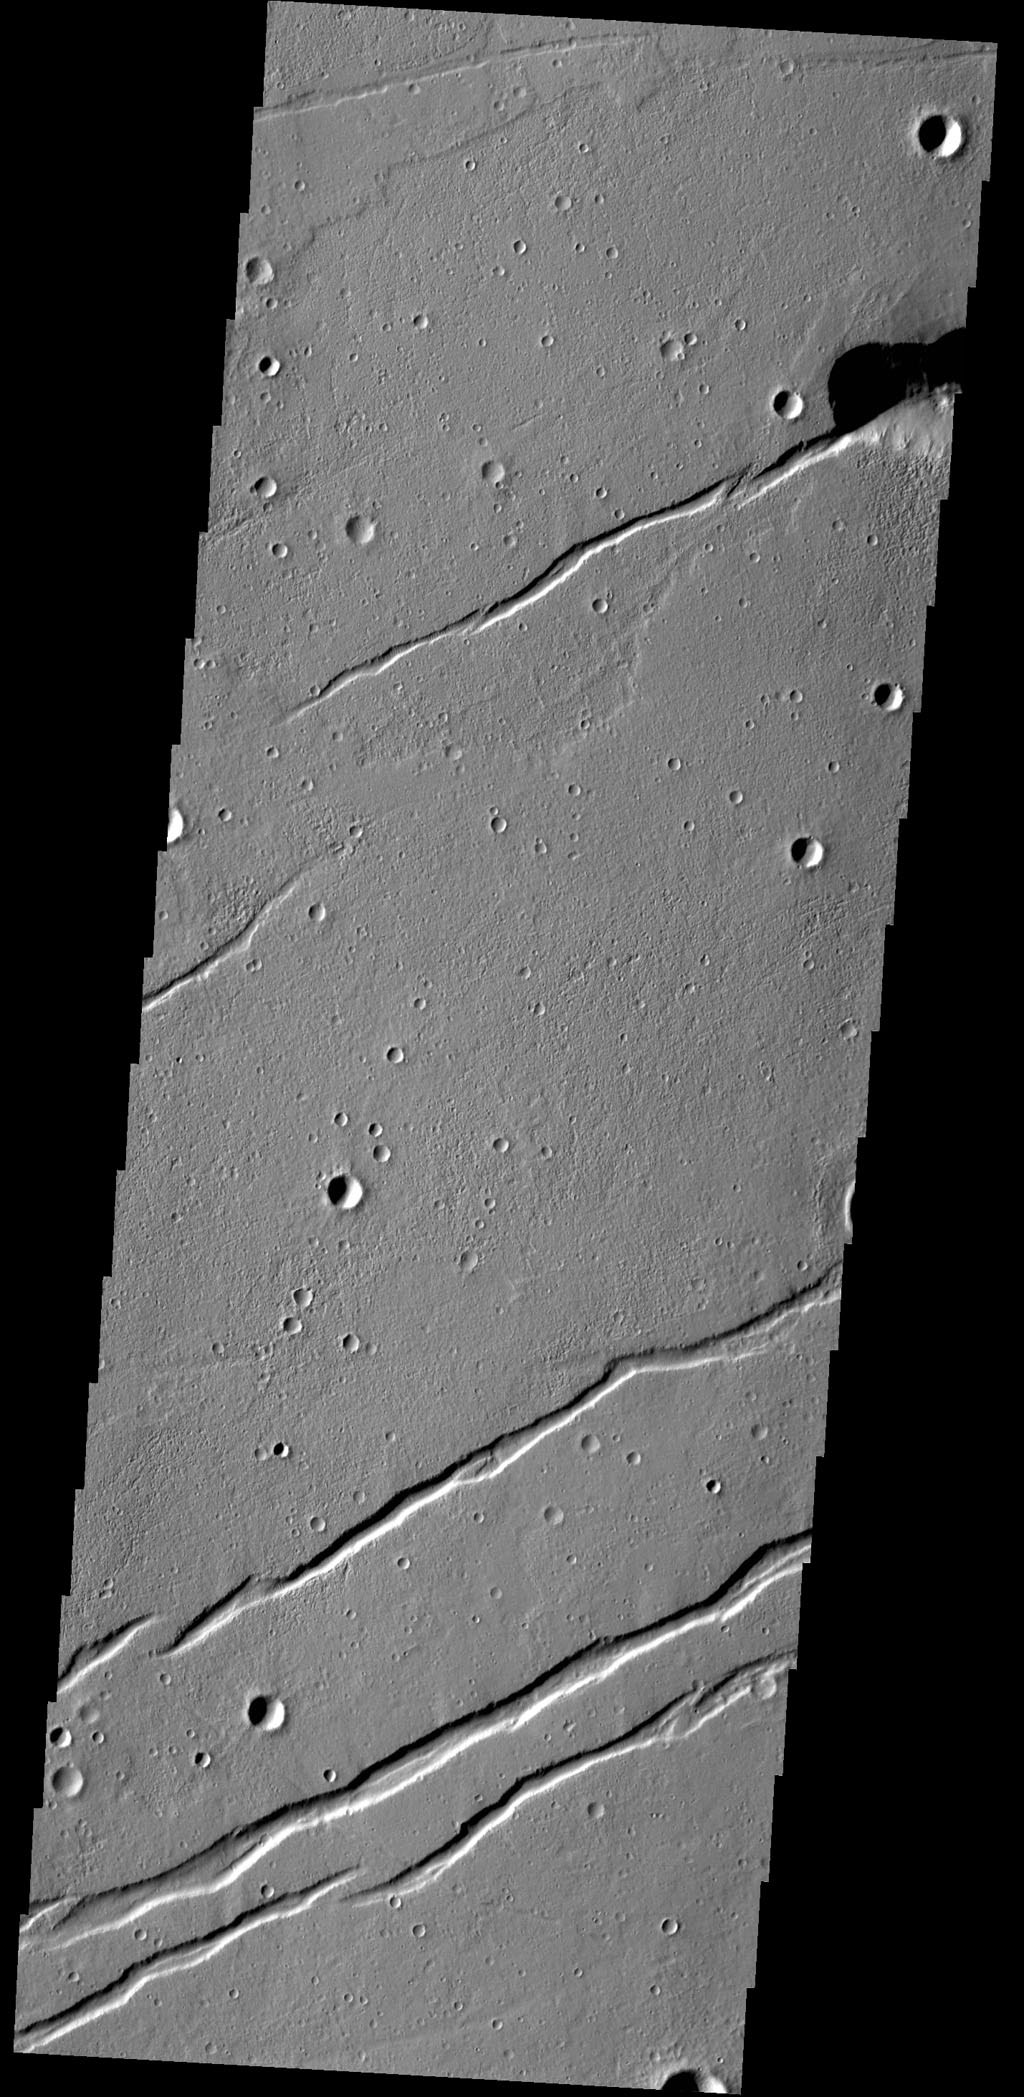 The depressions in this image captured by NASA's 2001 Mars Odyssey spacecraft are graben that make up part of Labeatis Fossae.